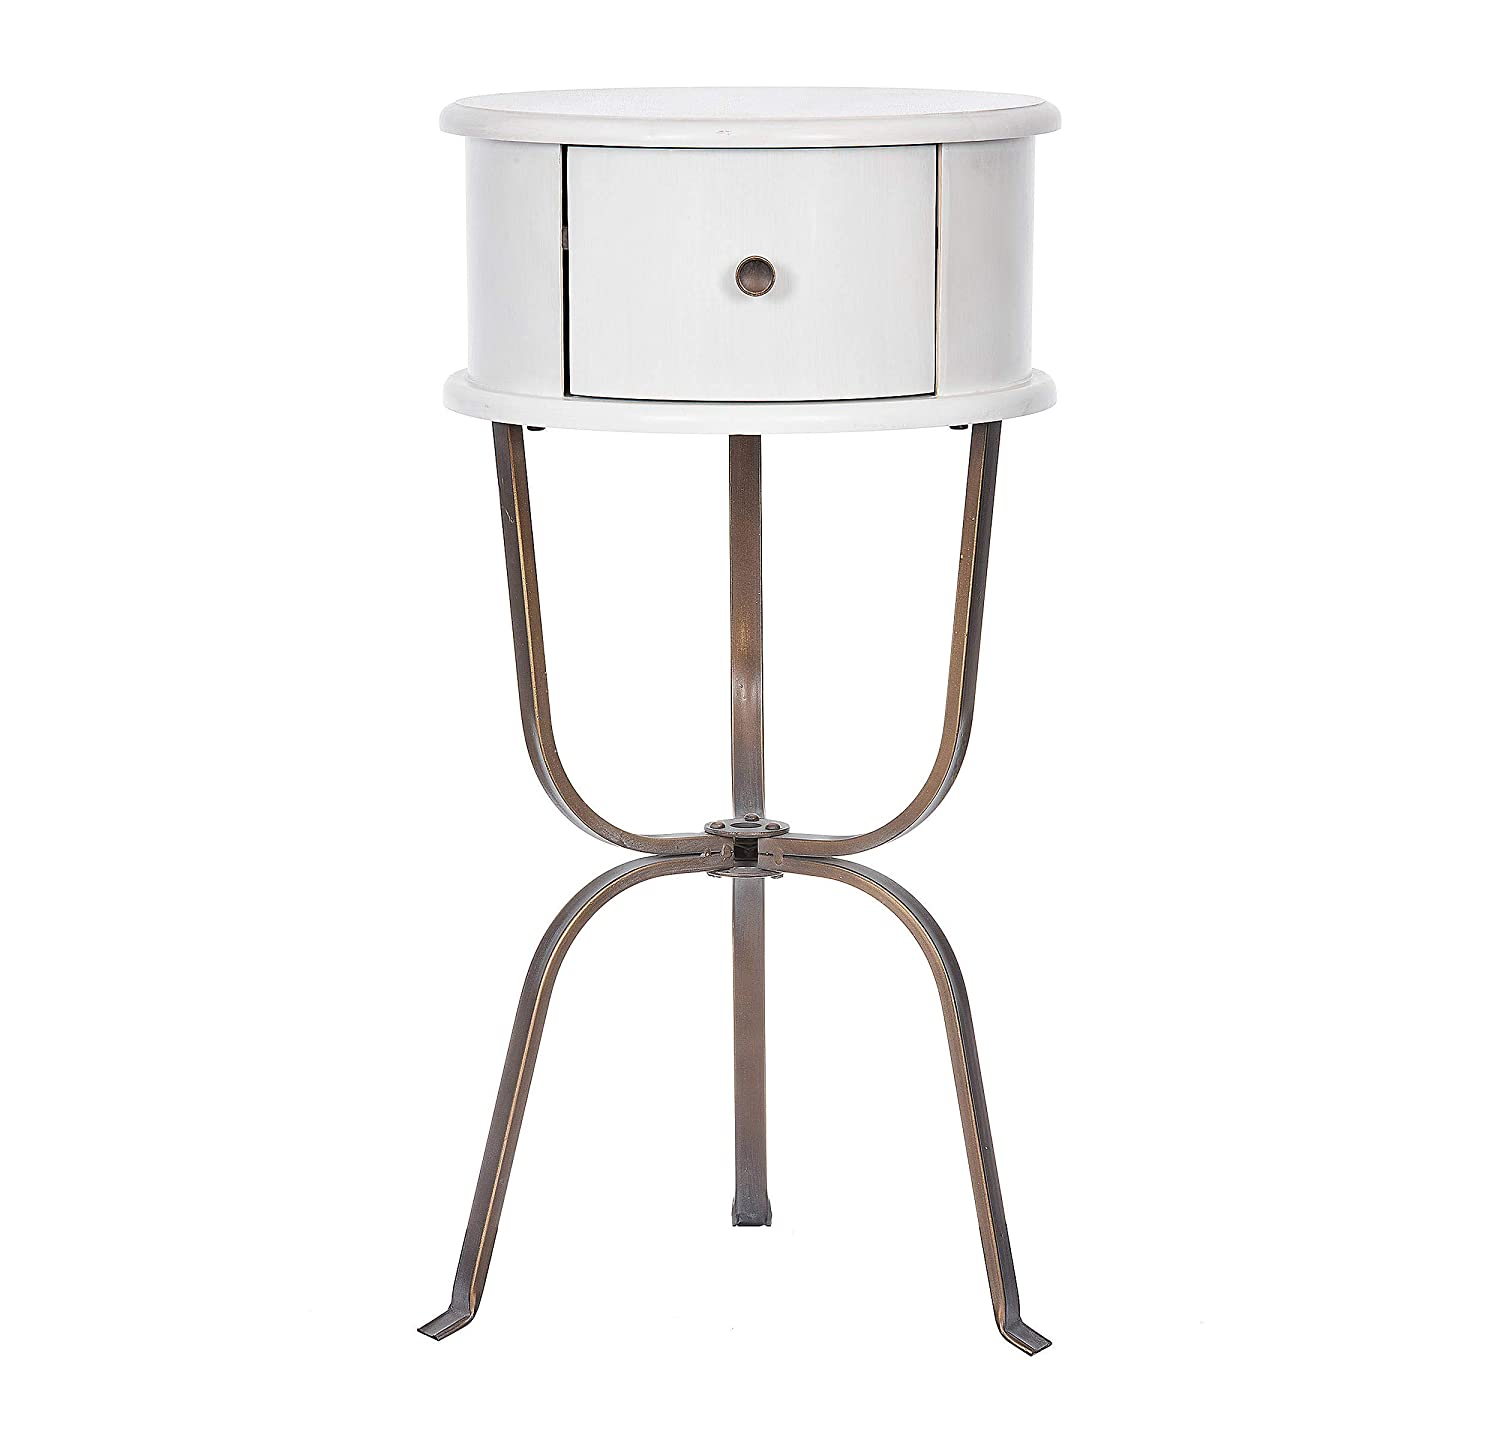 Round Whitewashed Wood And Bronze Metal Side Accent Table Includes Storage Drawer For A Dinning Living Or Bedroom 24l X 14w X 24h Inches Amazon In Home Kitchen